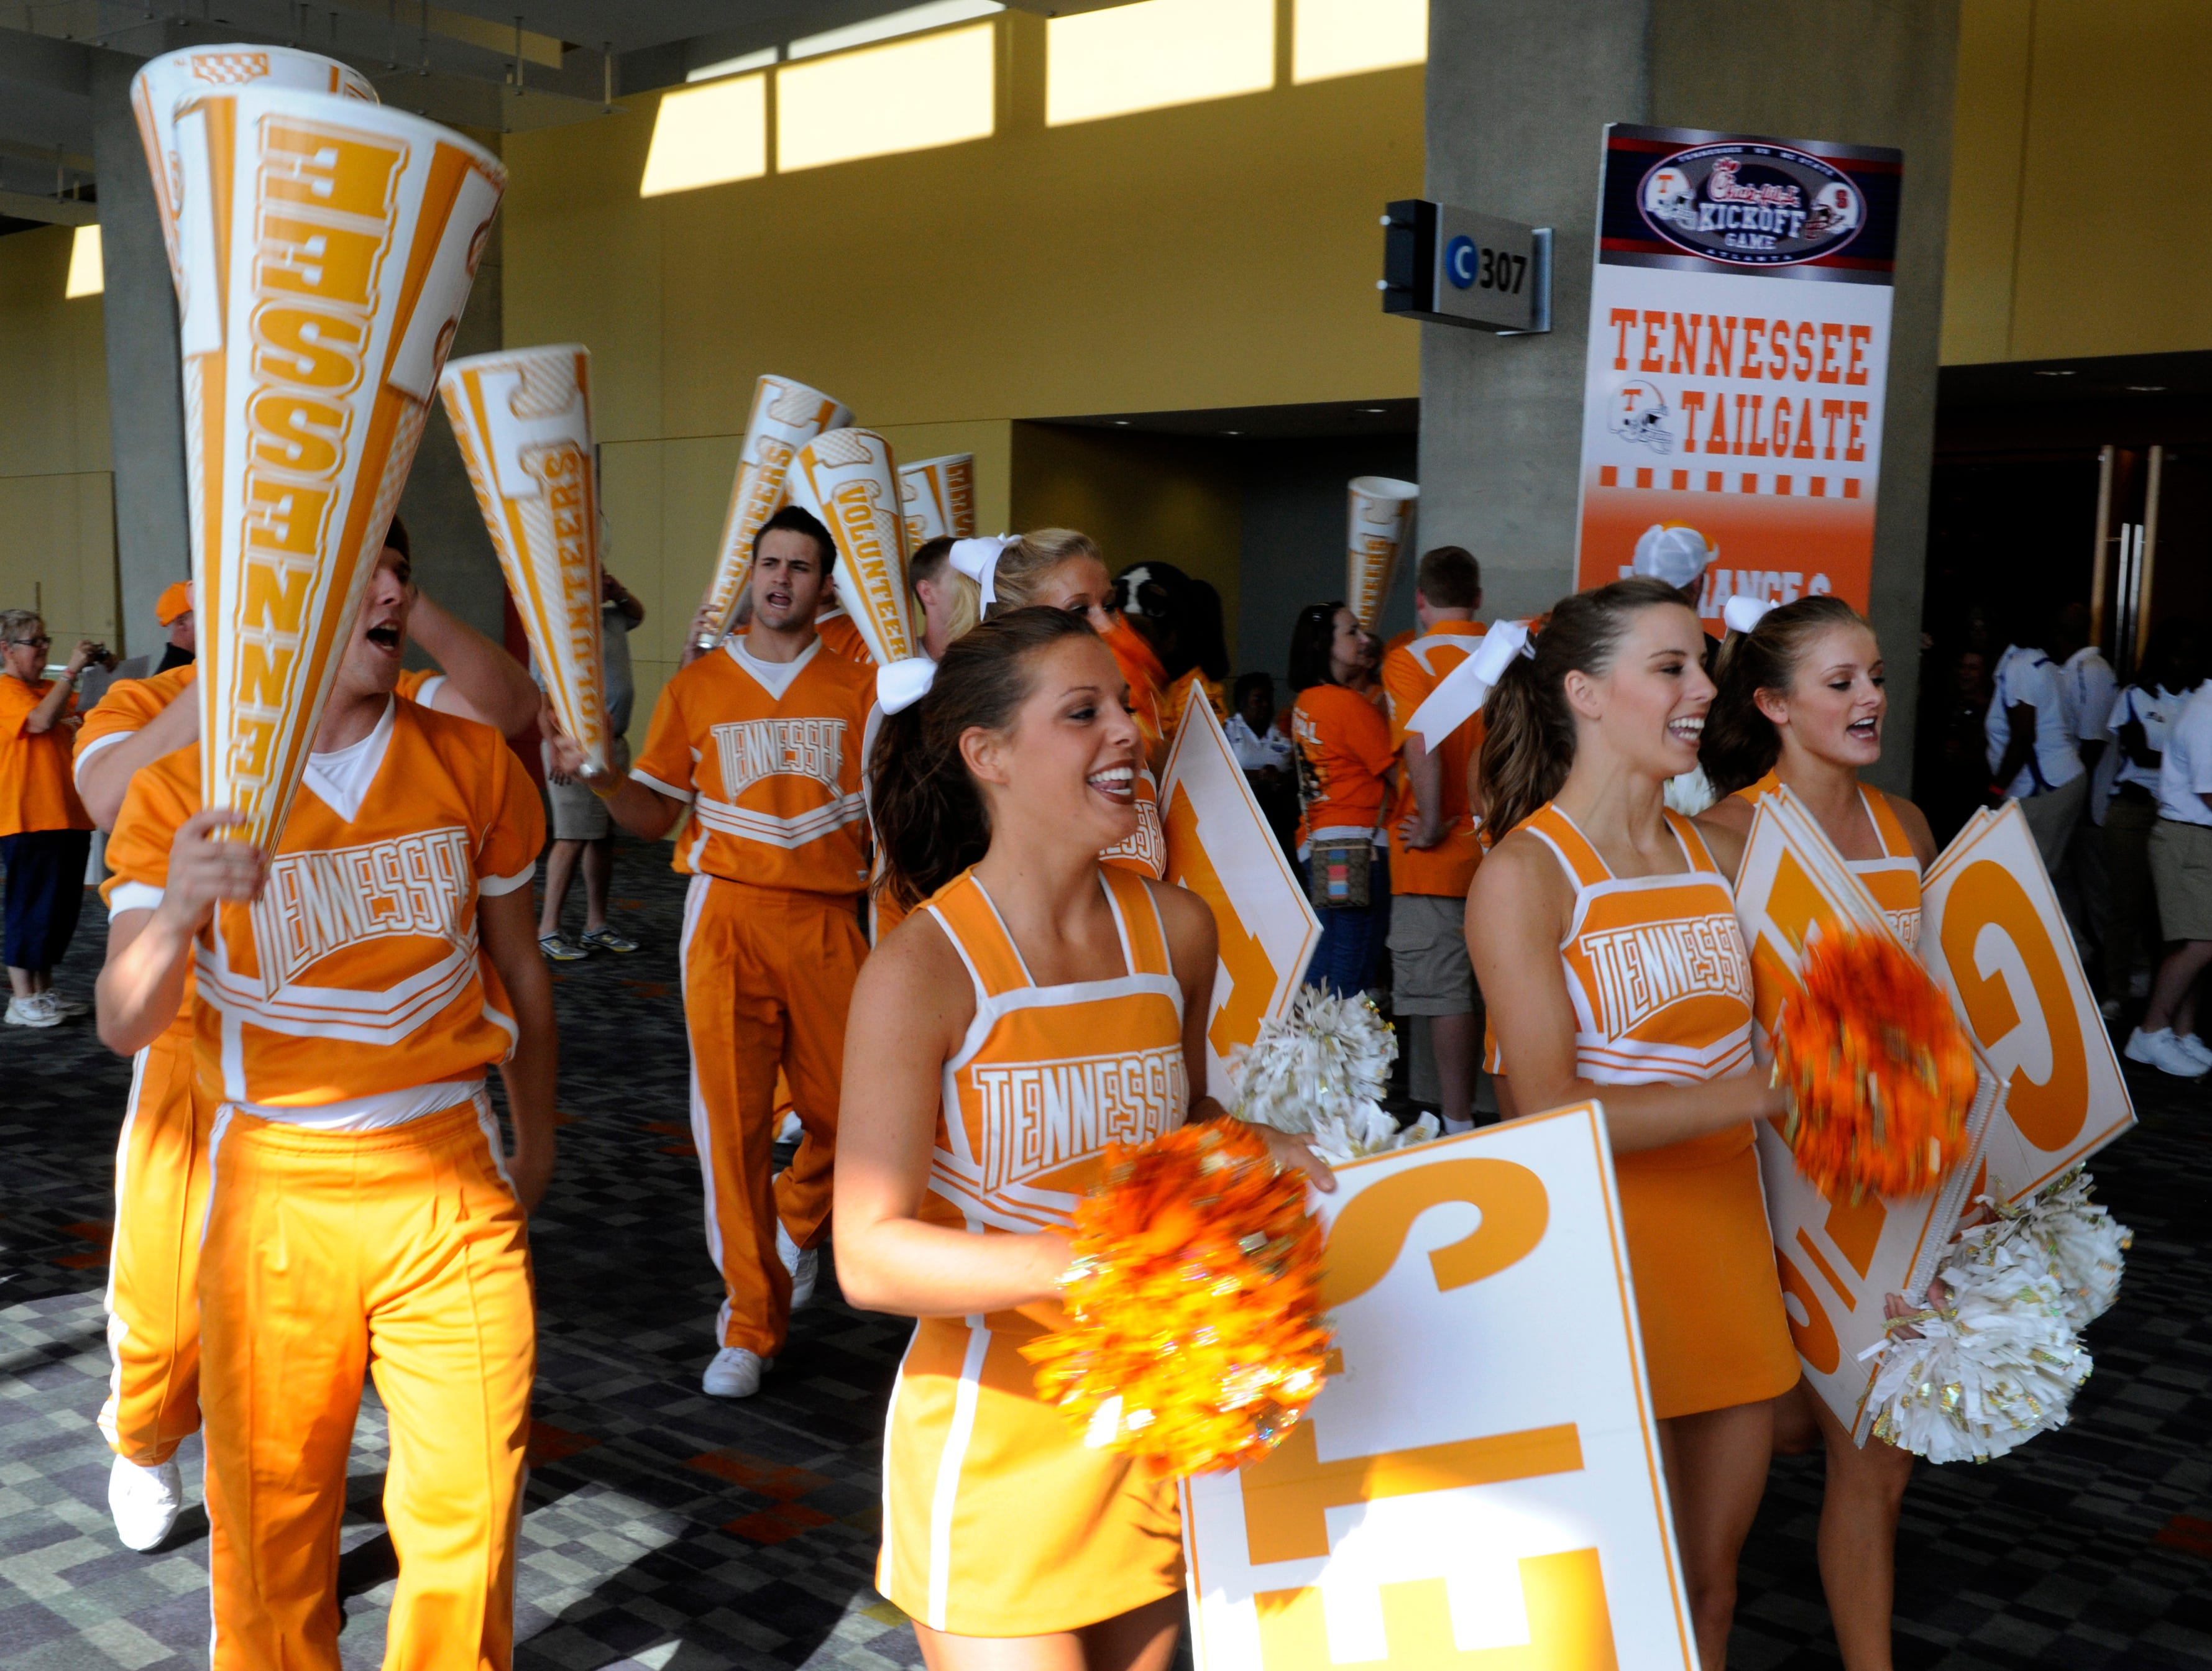 The UT cheerleaders leave a tailgate party in the Georgia World Congress Center Friday, Aug. 31, 2012 in Atlanta prior to the Chick-fil-A Kickoff Game.